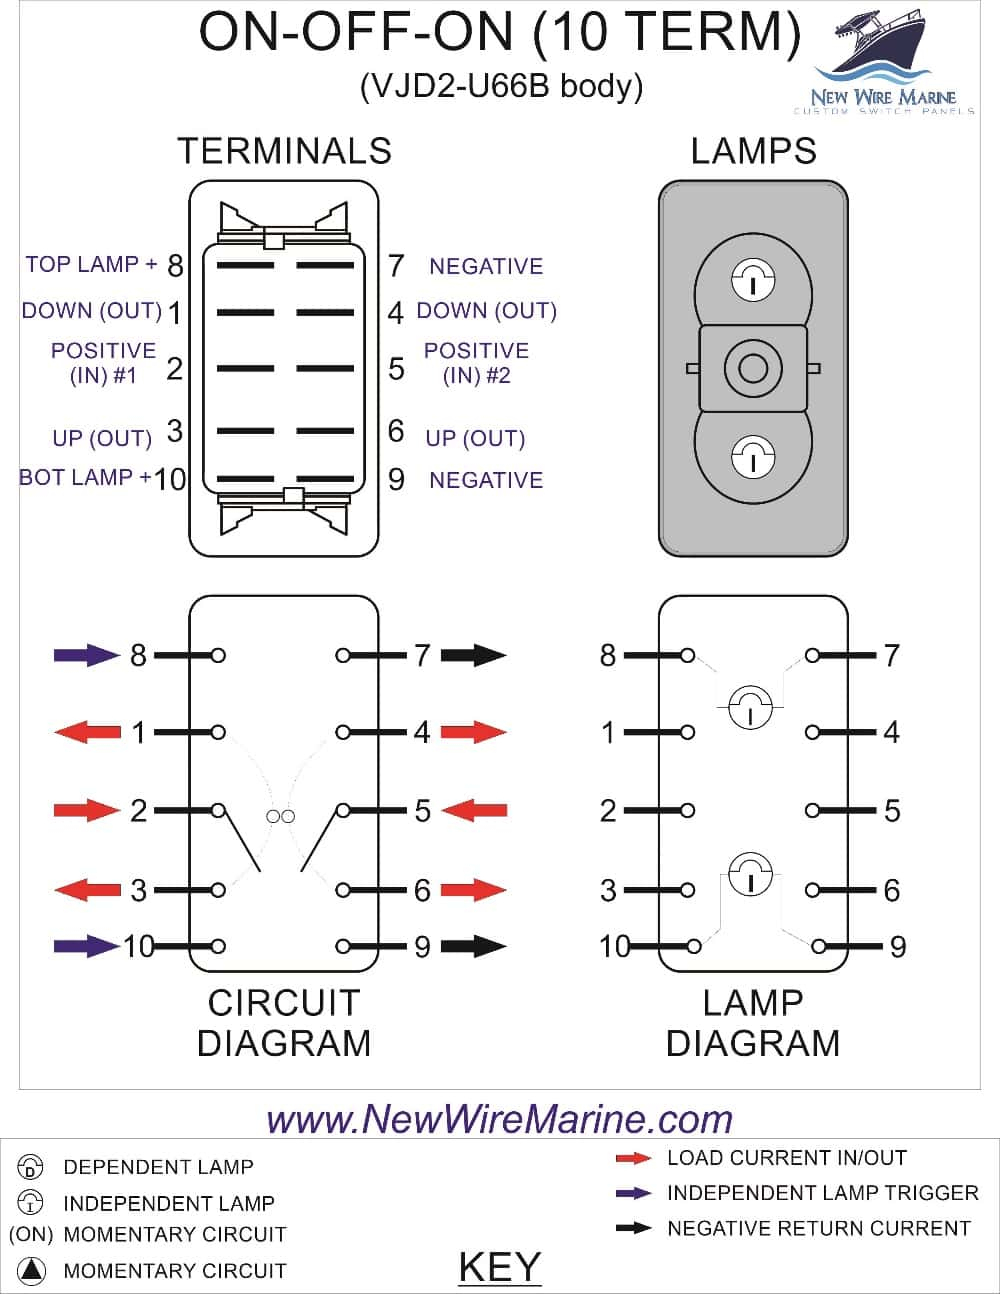 Rocker Switch Wiring Diagrams | New Wire Marine - Toggle Switch Wiring Diagram